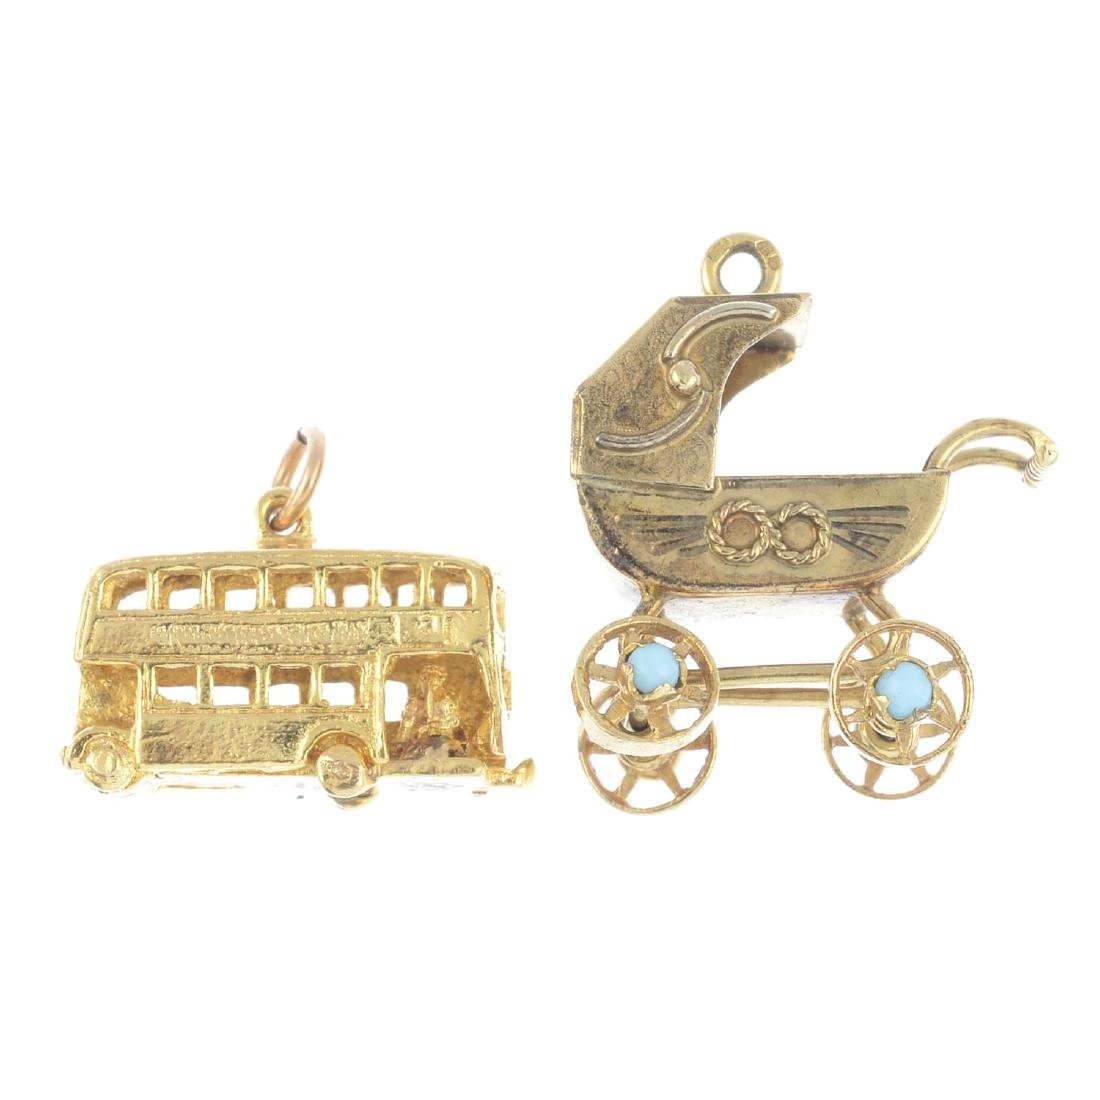 Two 9ct gold charms. To include a pram with blue gem